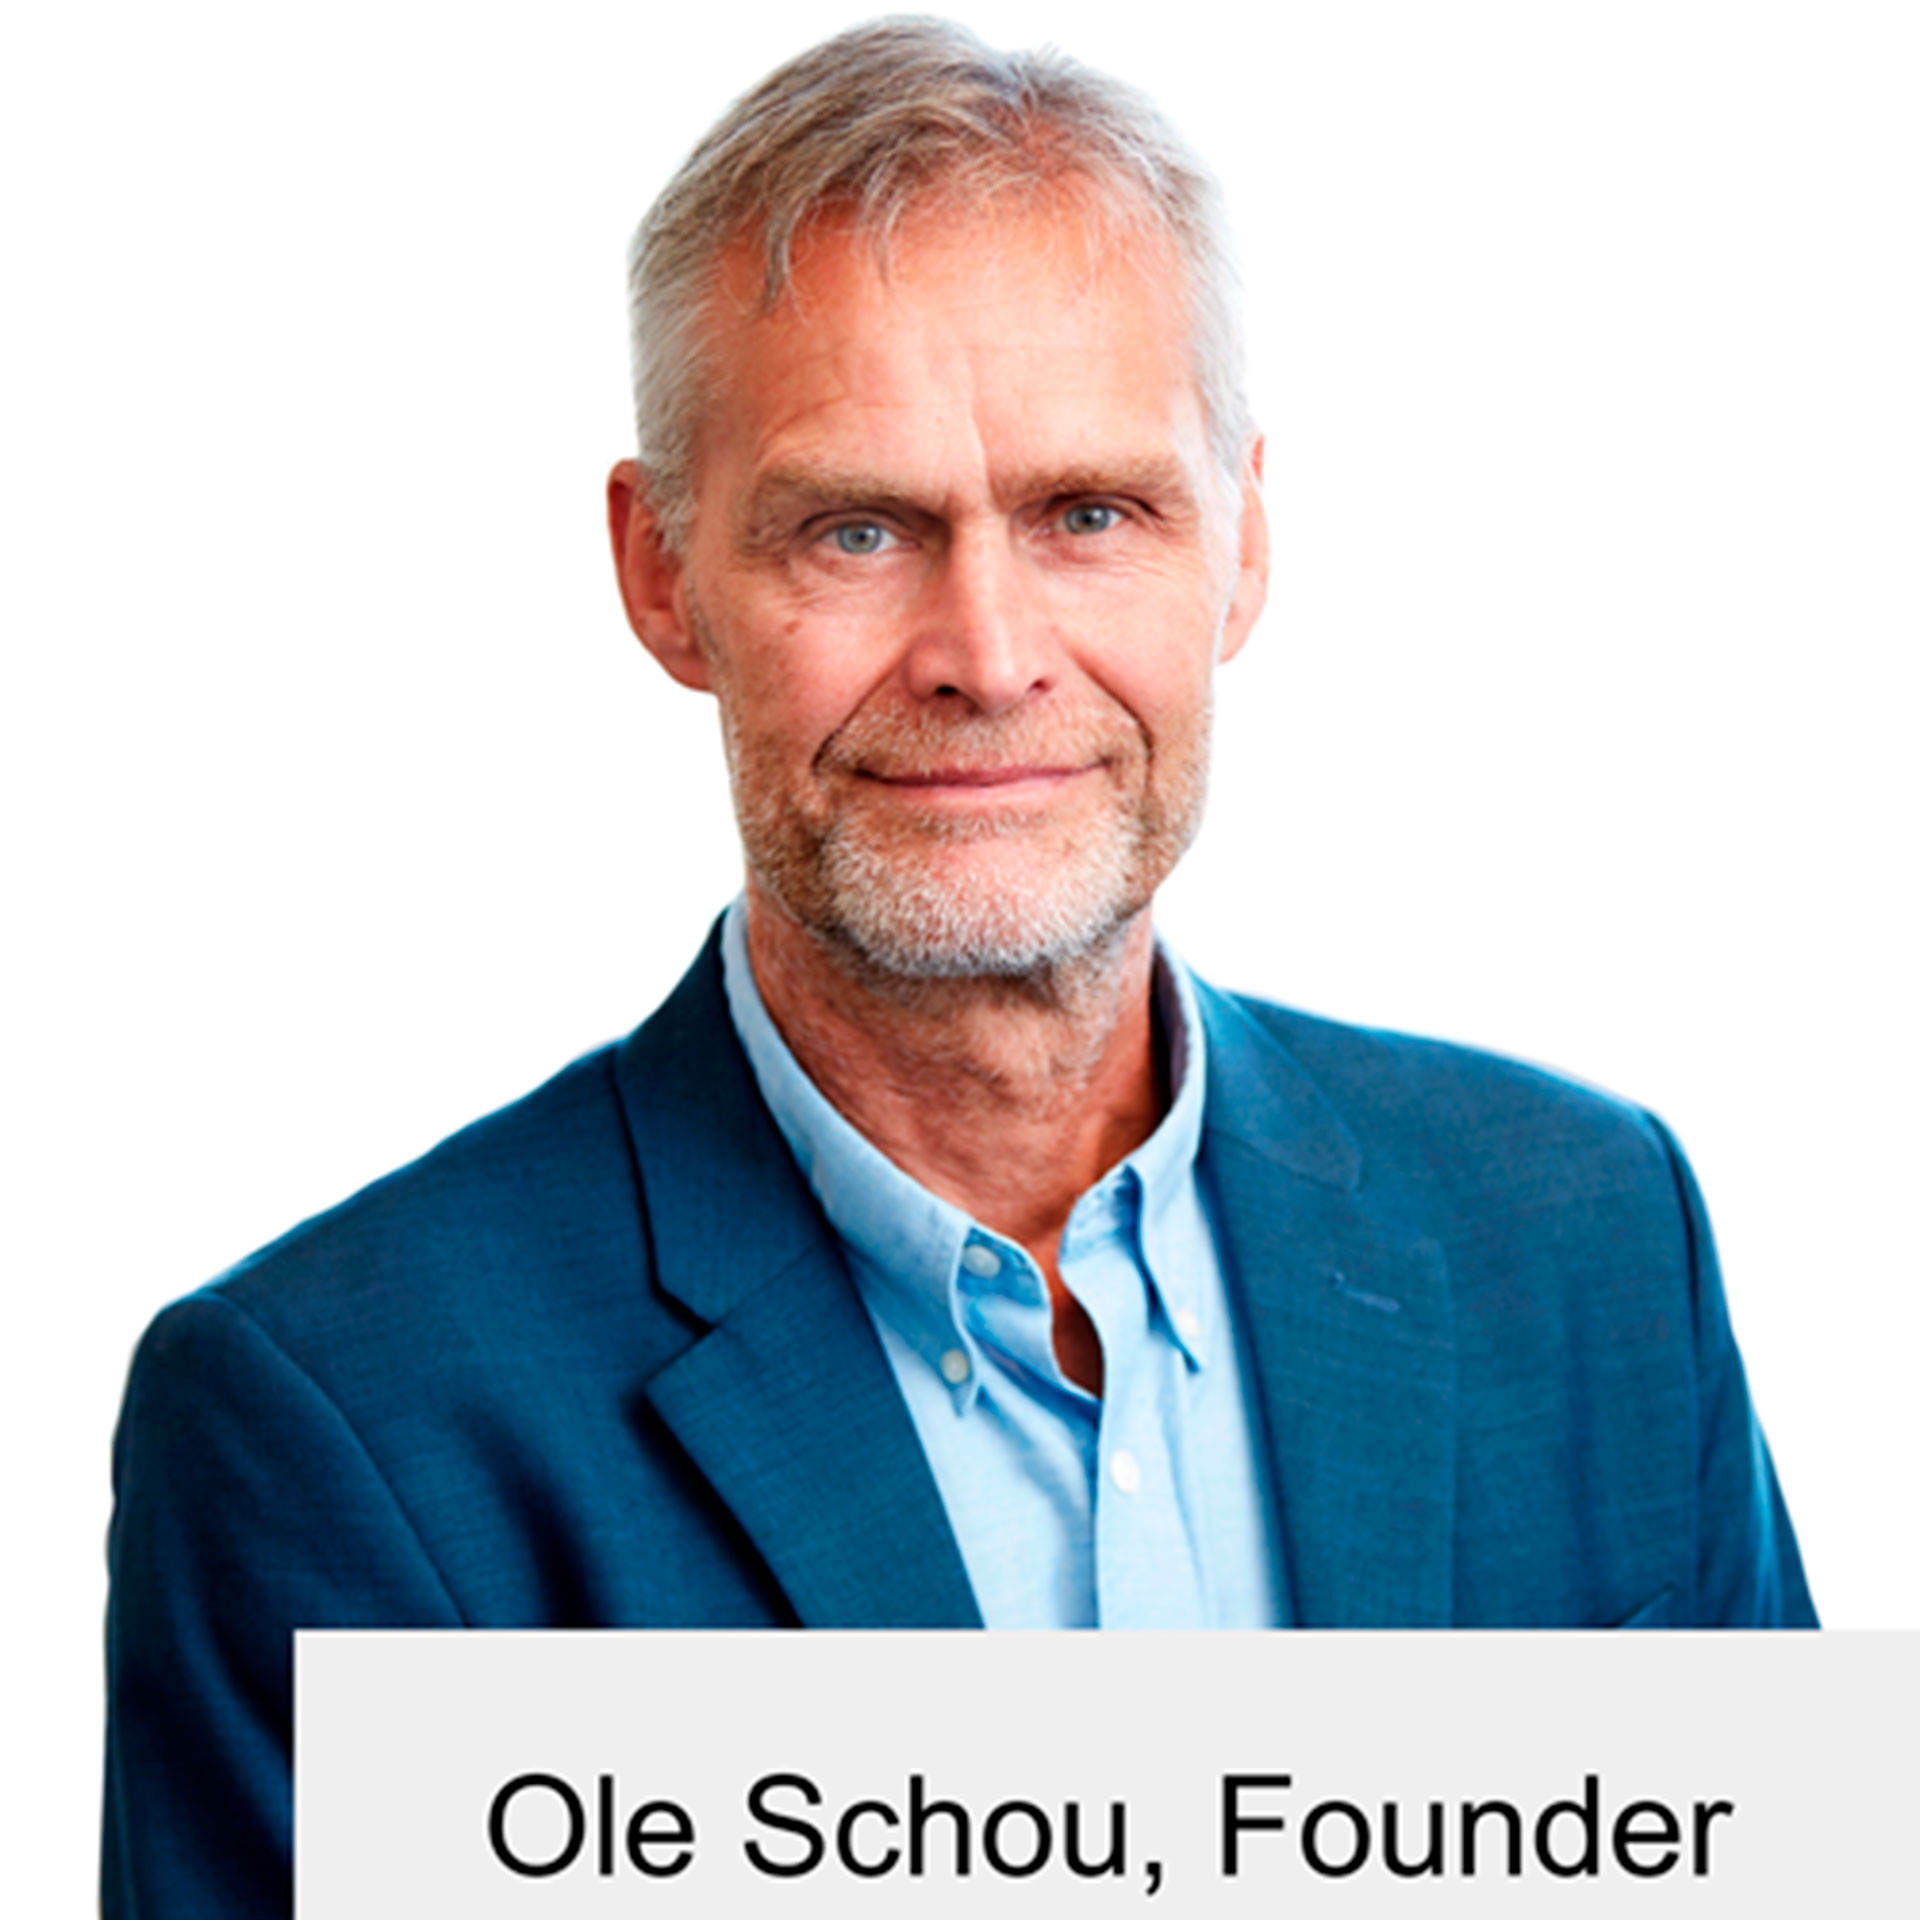 Ole Schou, founder of Cryos